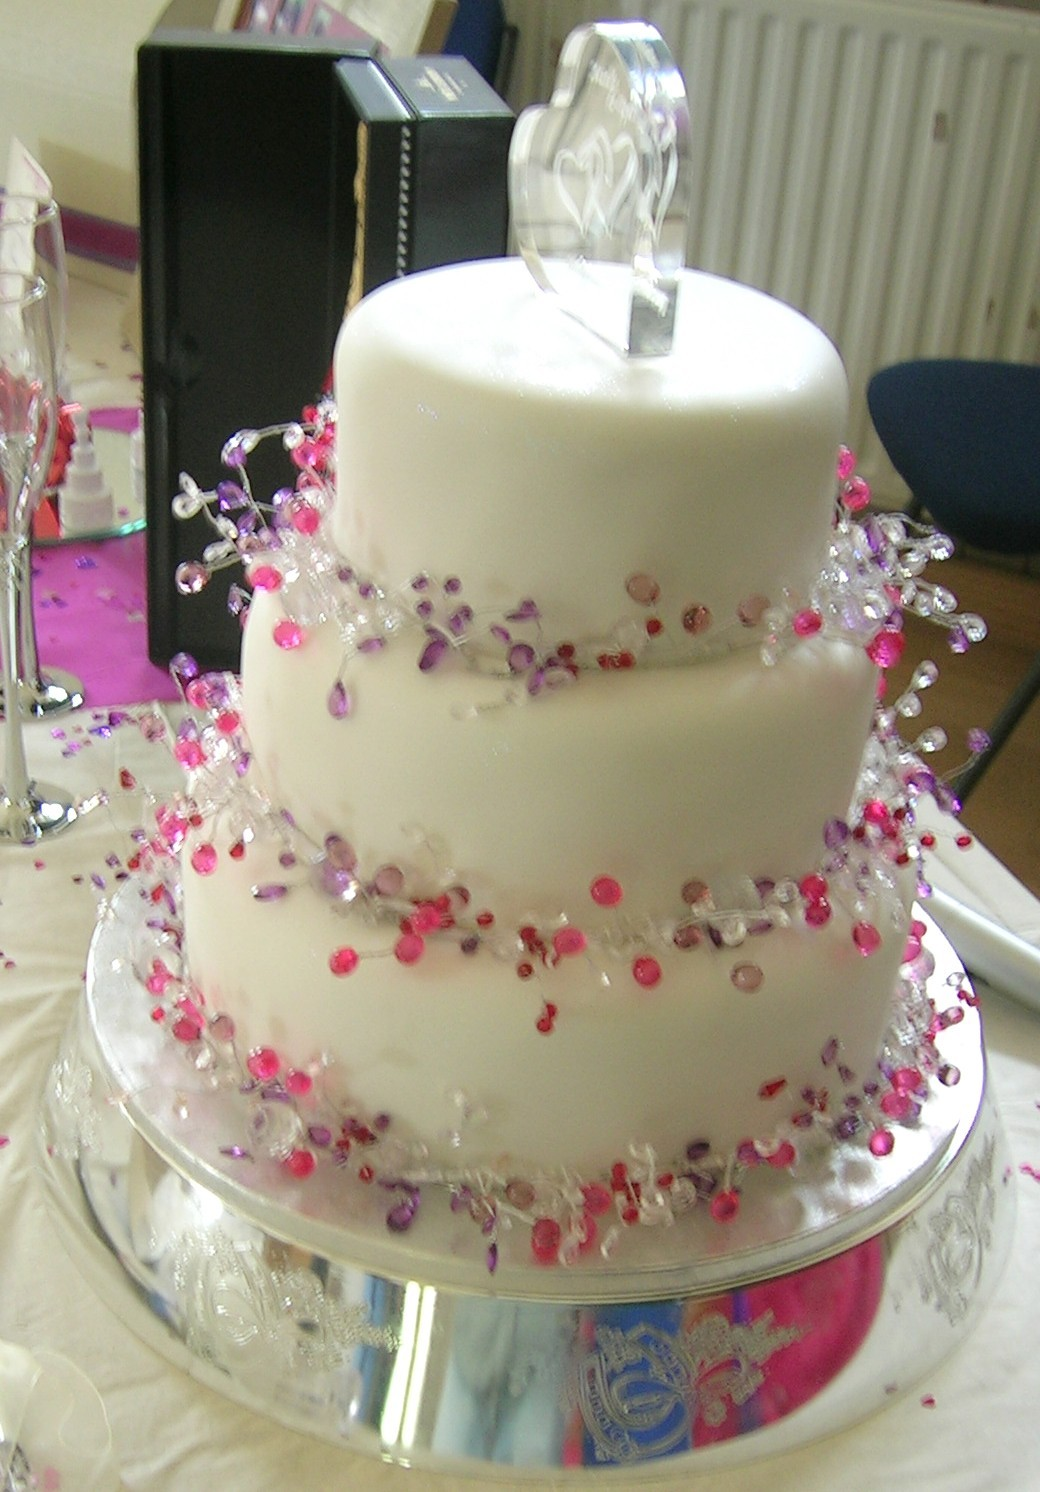 Decoration Of Cake In Home : Wedding Cake Decorating Pictures Ideas